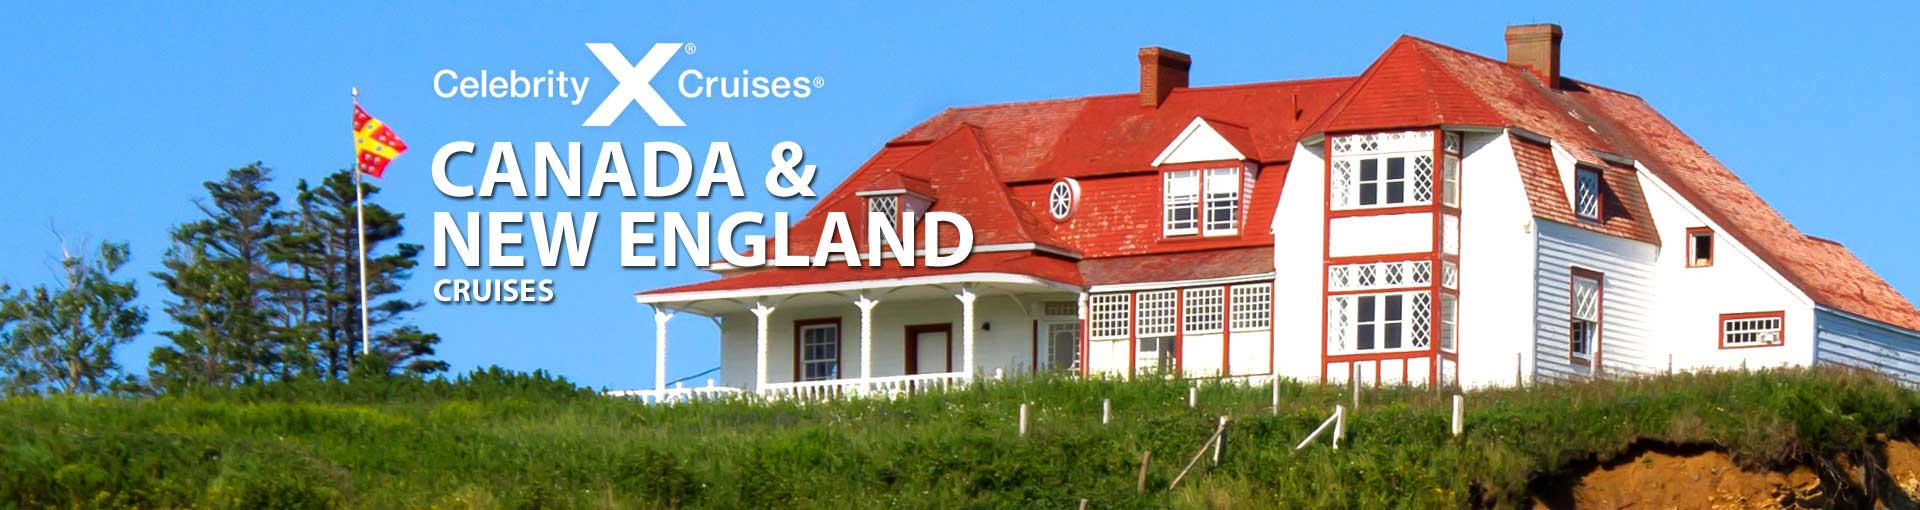 Celebrity Cruises Canada and New England Tour Highlights ...